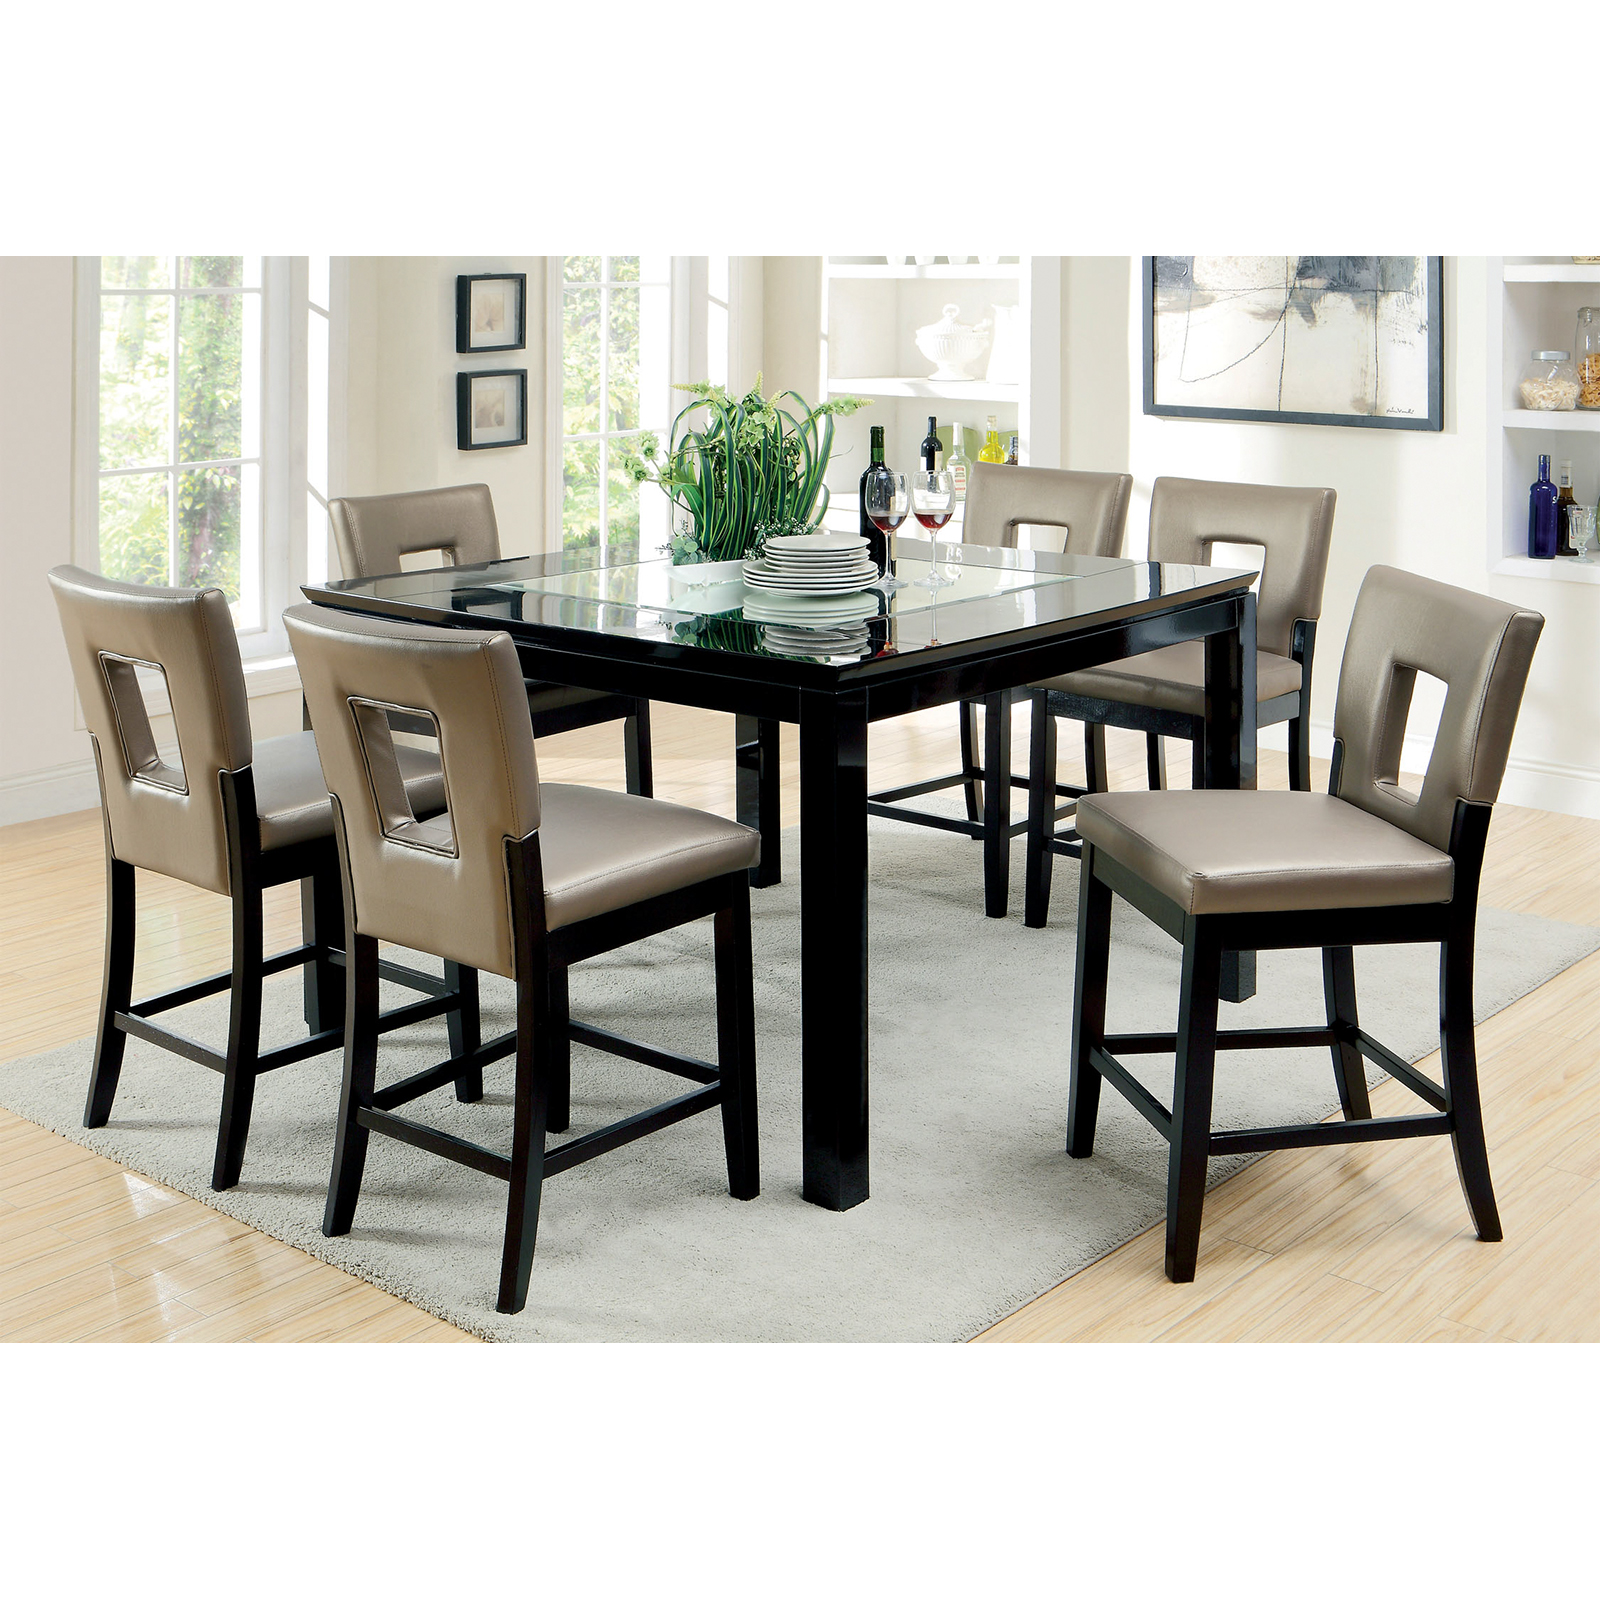 Bon Furniture Of America Vanderbilte 9 Piece Glass Inlay Counter Height Dining  Set   Black | Hayneedle